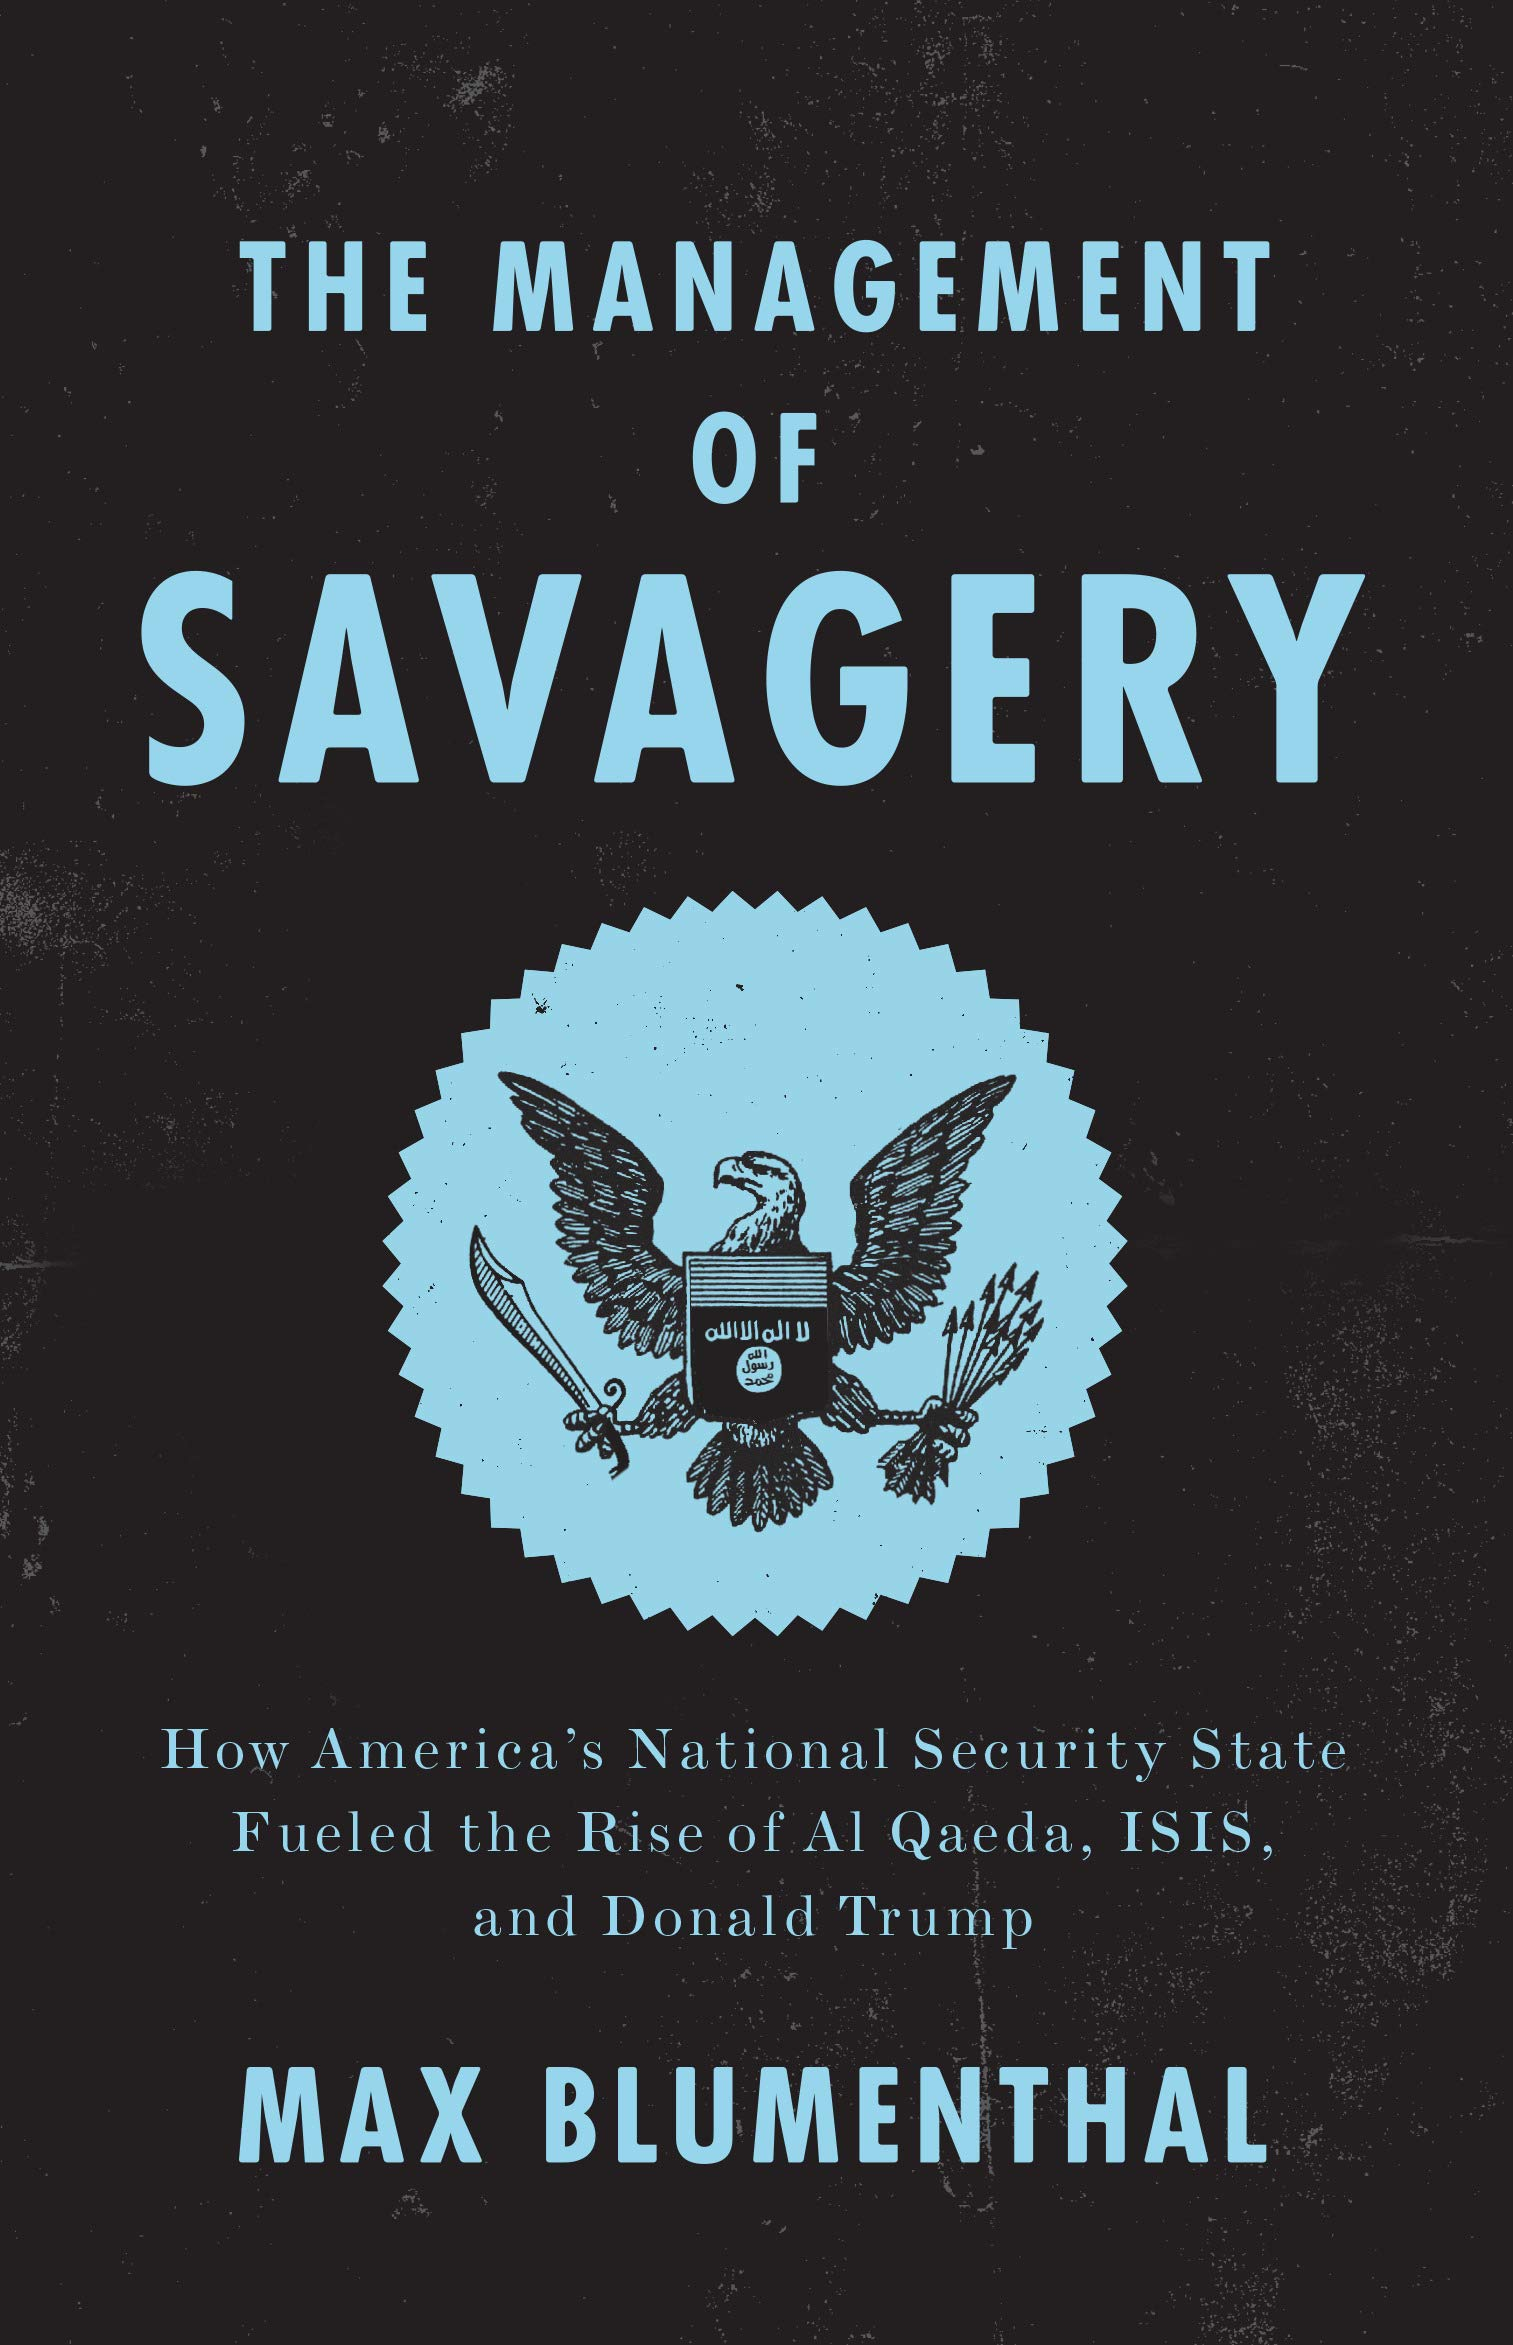 Image OfThe Management Of Savagery: How America's National Security State Fueled The Rise Of Al Qaeda, Isis, And Donald Trump